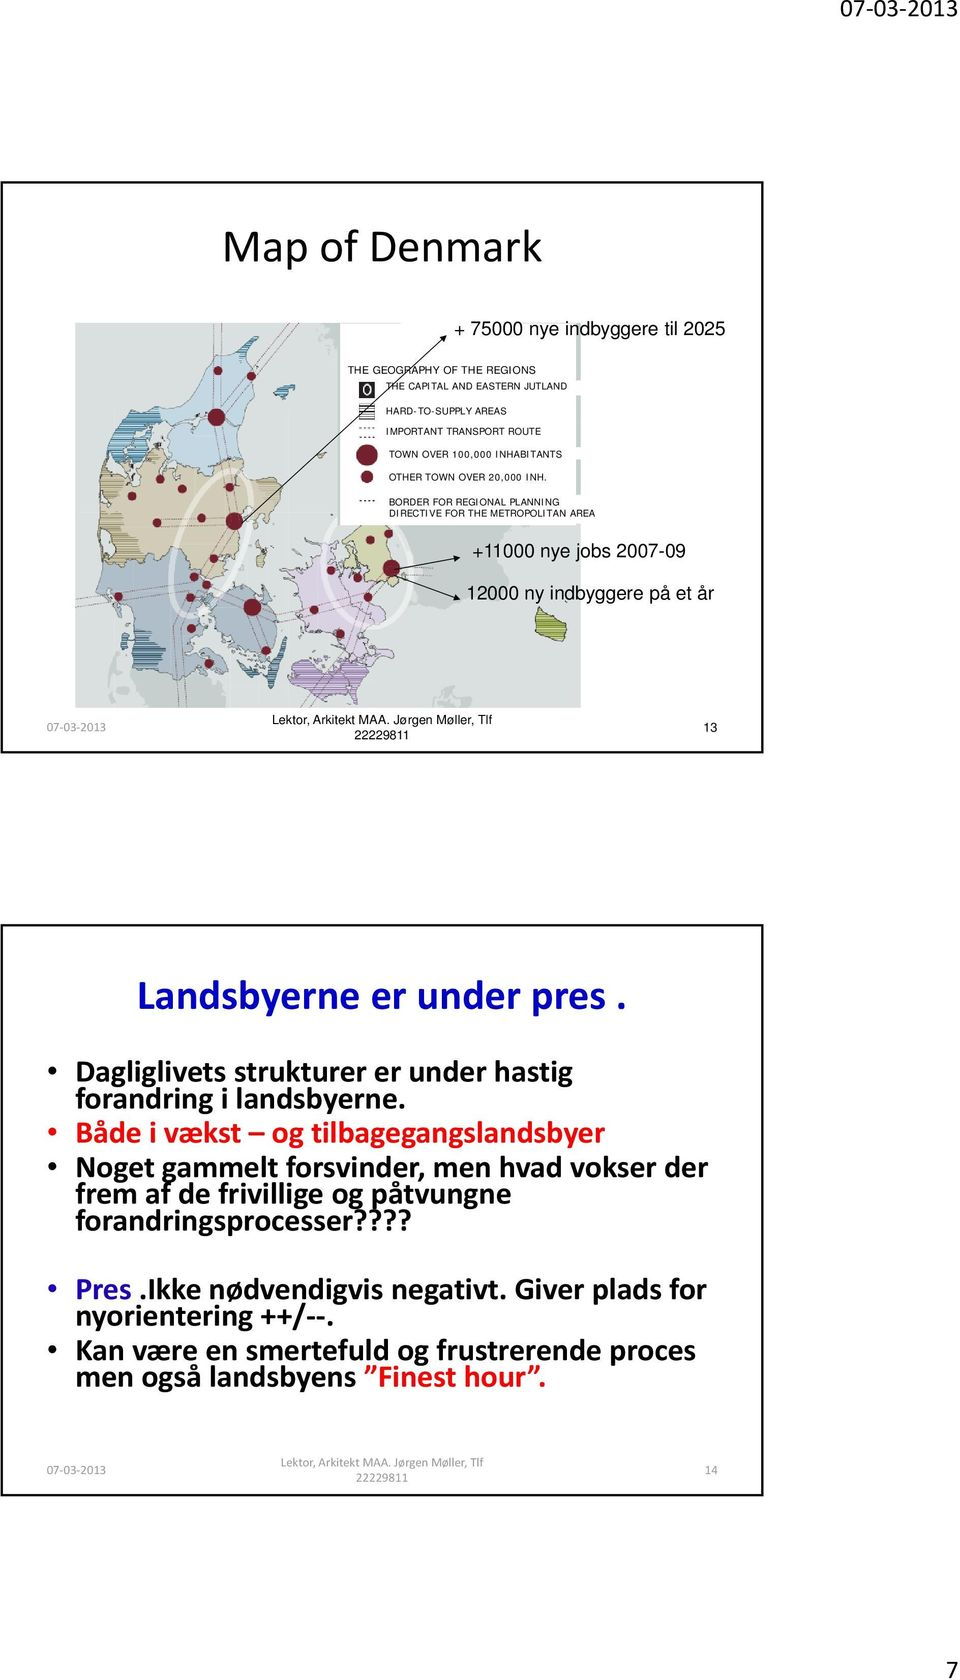 BORDER FOR REGIONAL PLANNING DIRECTIVE FOR THE METROPOLITAN AREA +11000 nye jobs 2007-09 12000 ny indbyggere på et år 13 Landsbyerne er under pres.